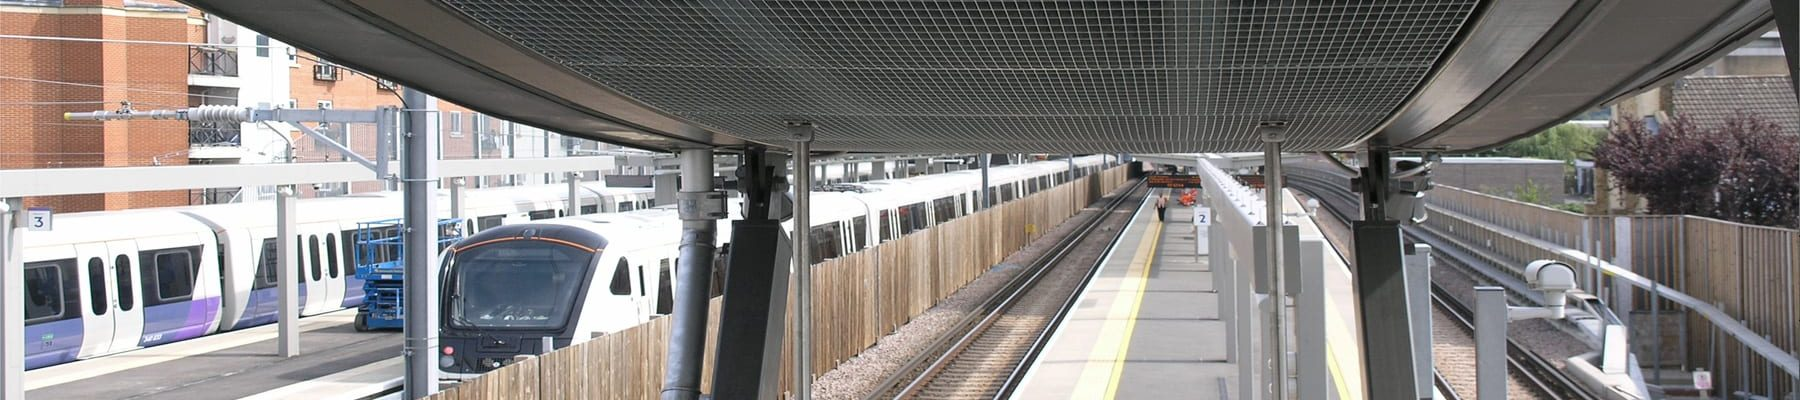 Stretto-22-bespoke-66x22-ceiling-panels-Abbey-Wood-Station-1-B